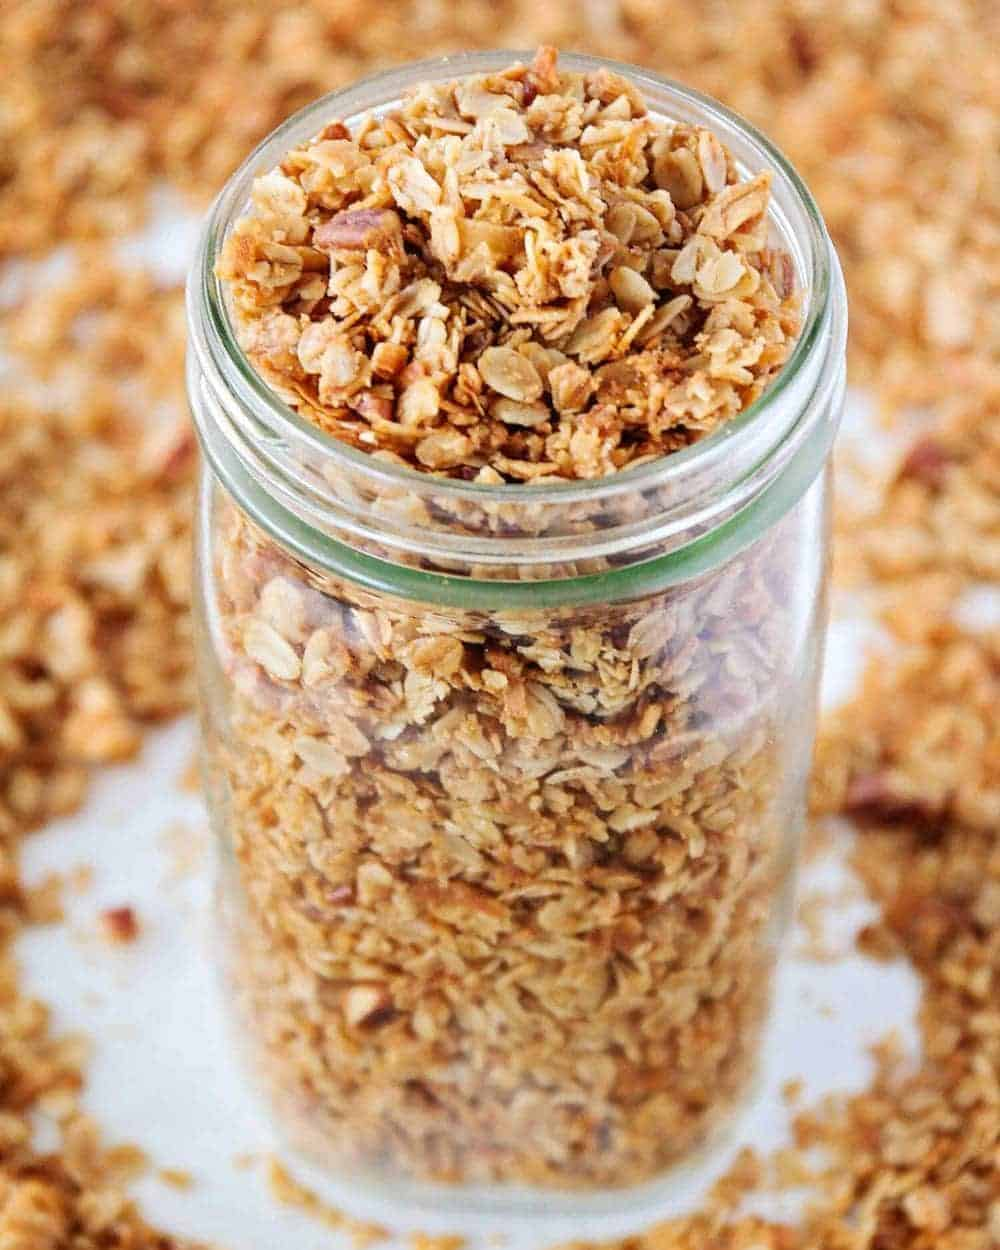 homemade granola in a glass mason jar